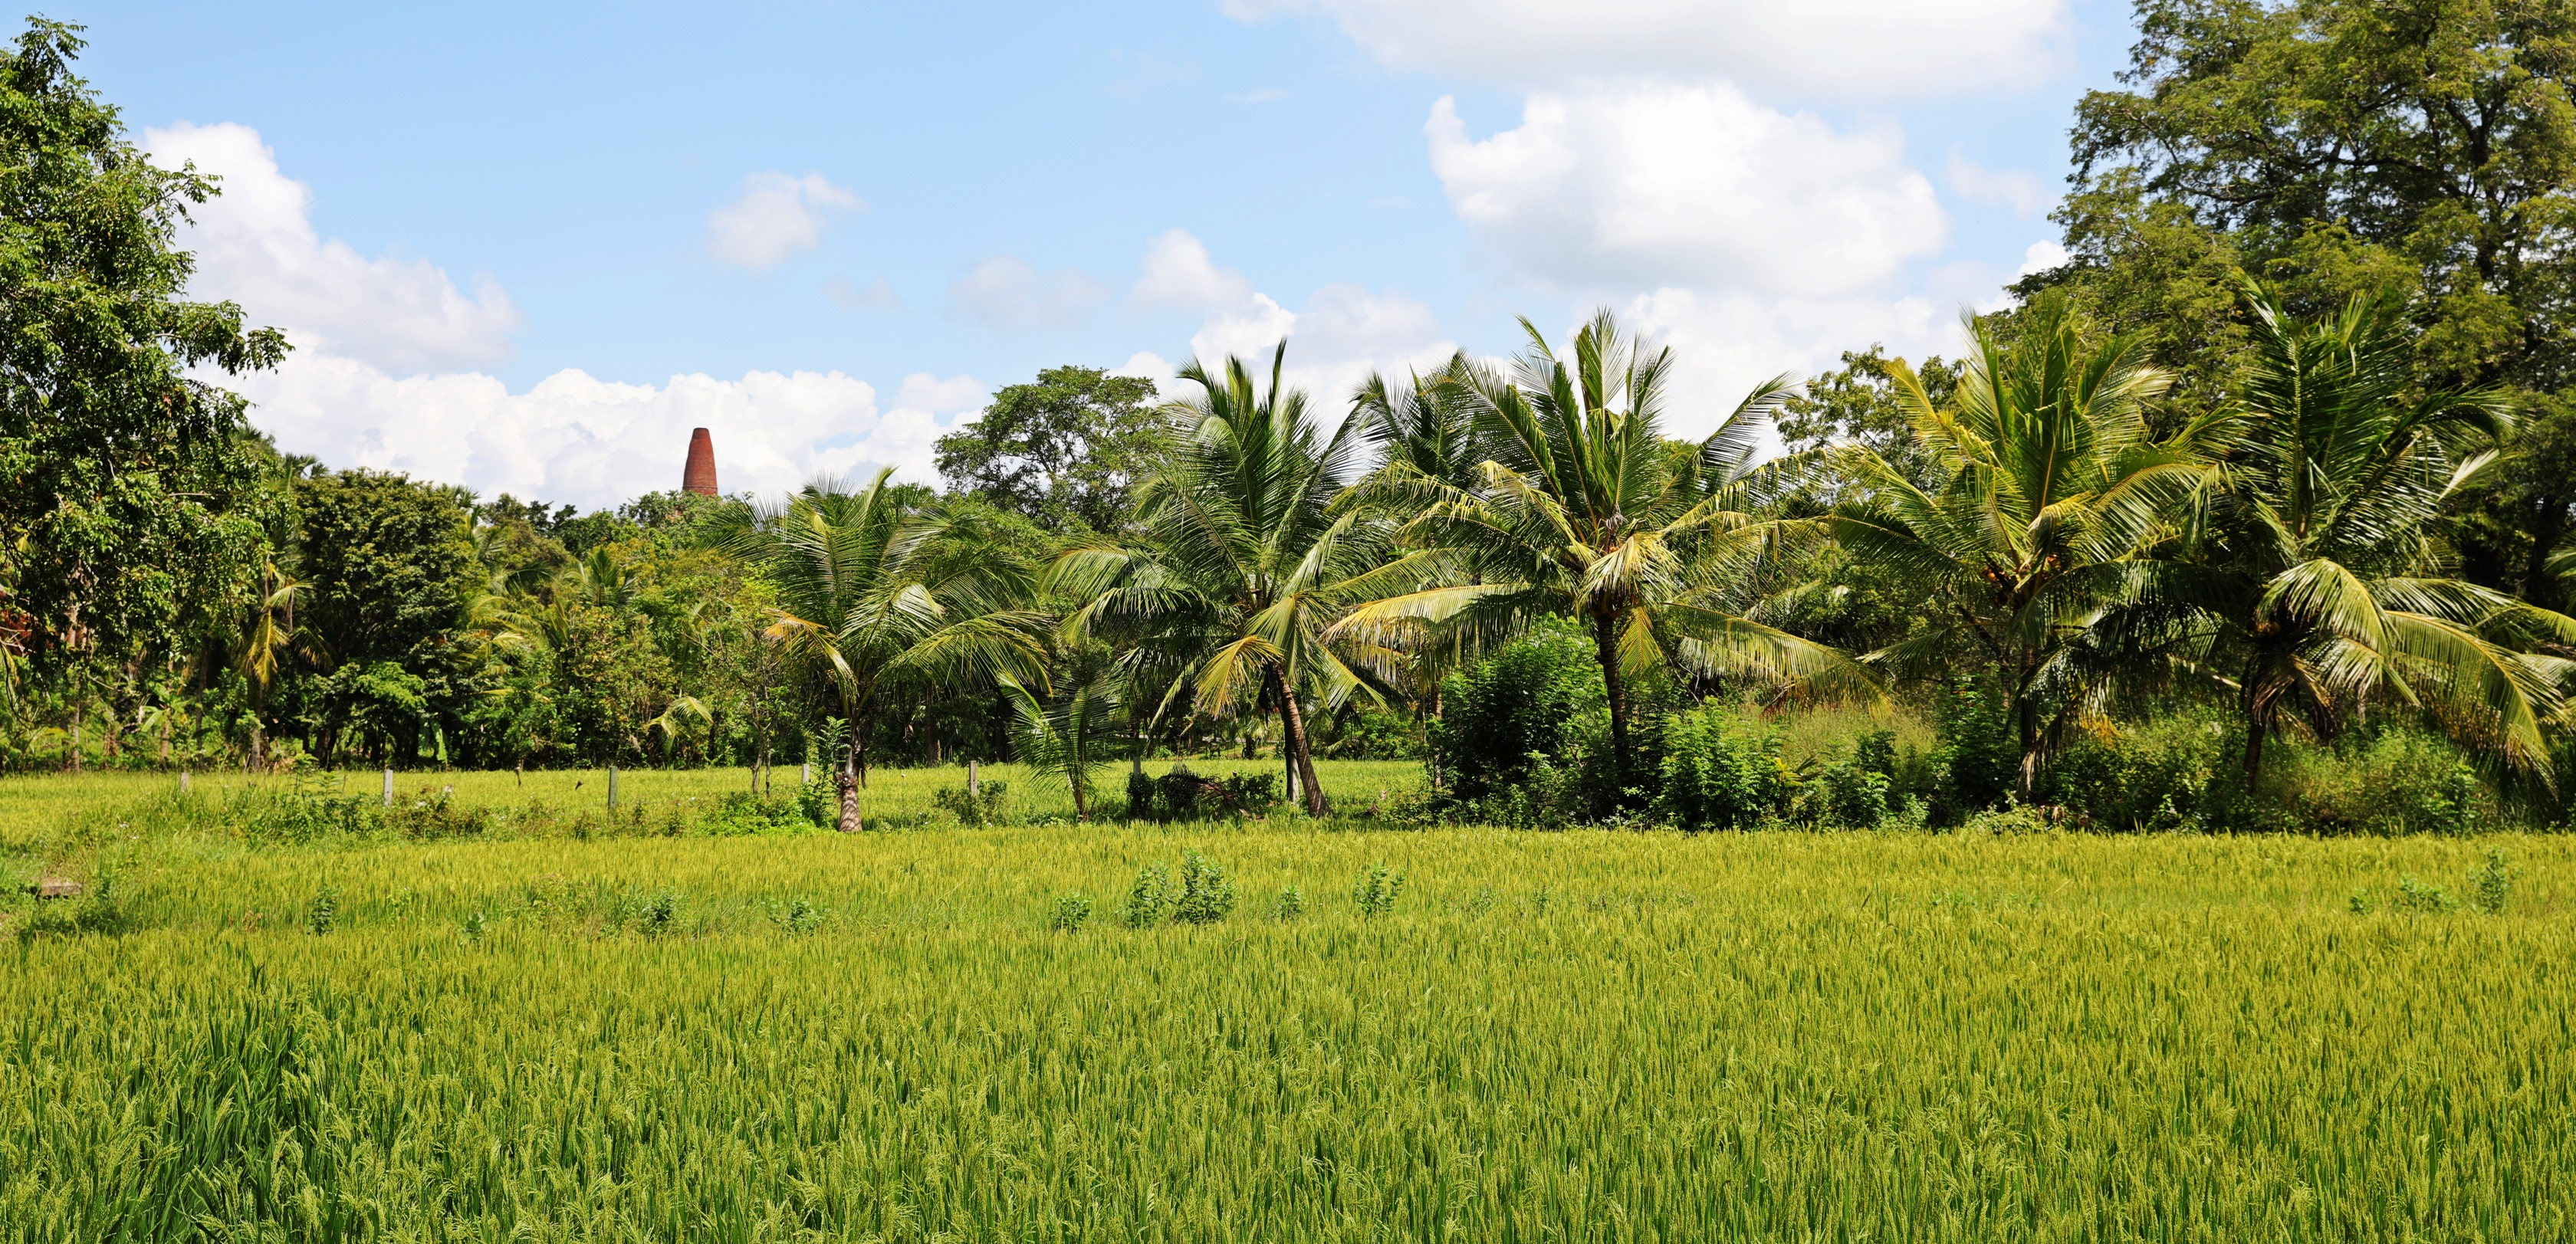 Rice fields with a dagoba in the background, Anuradhapura